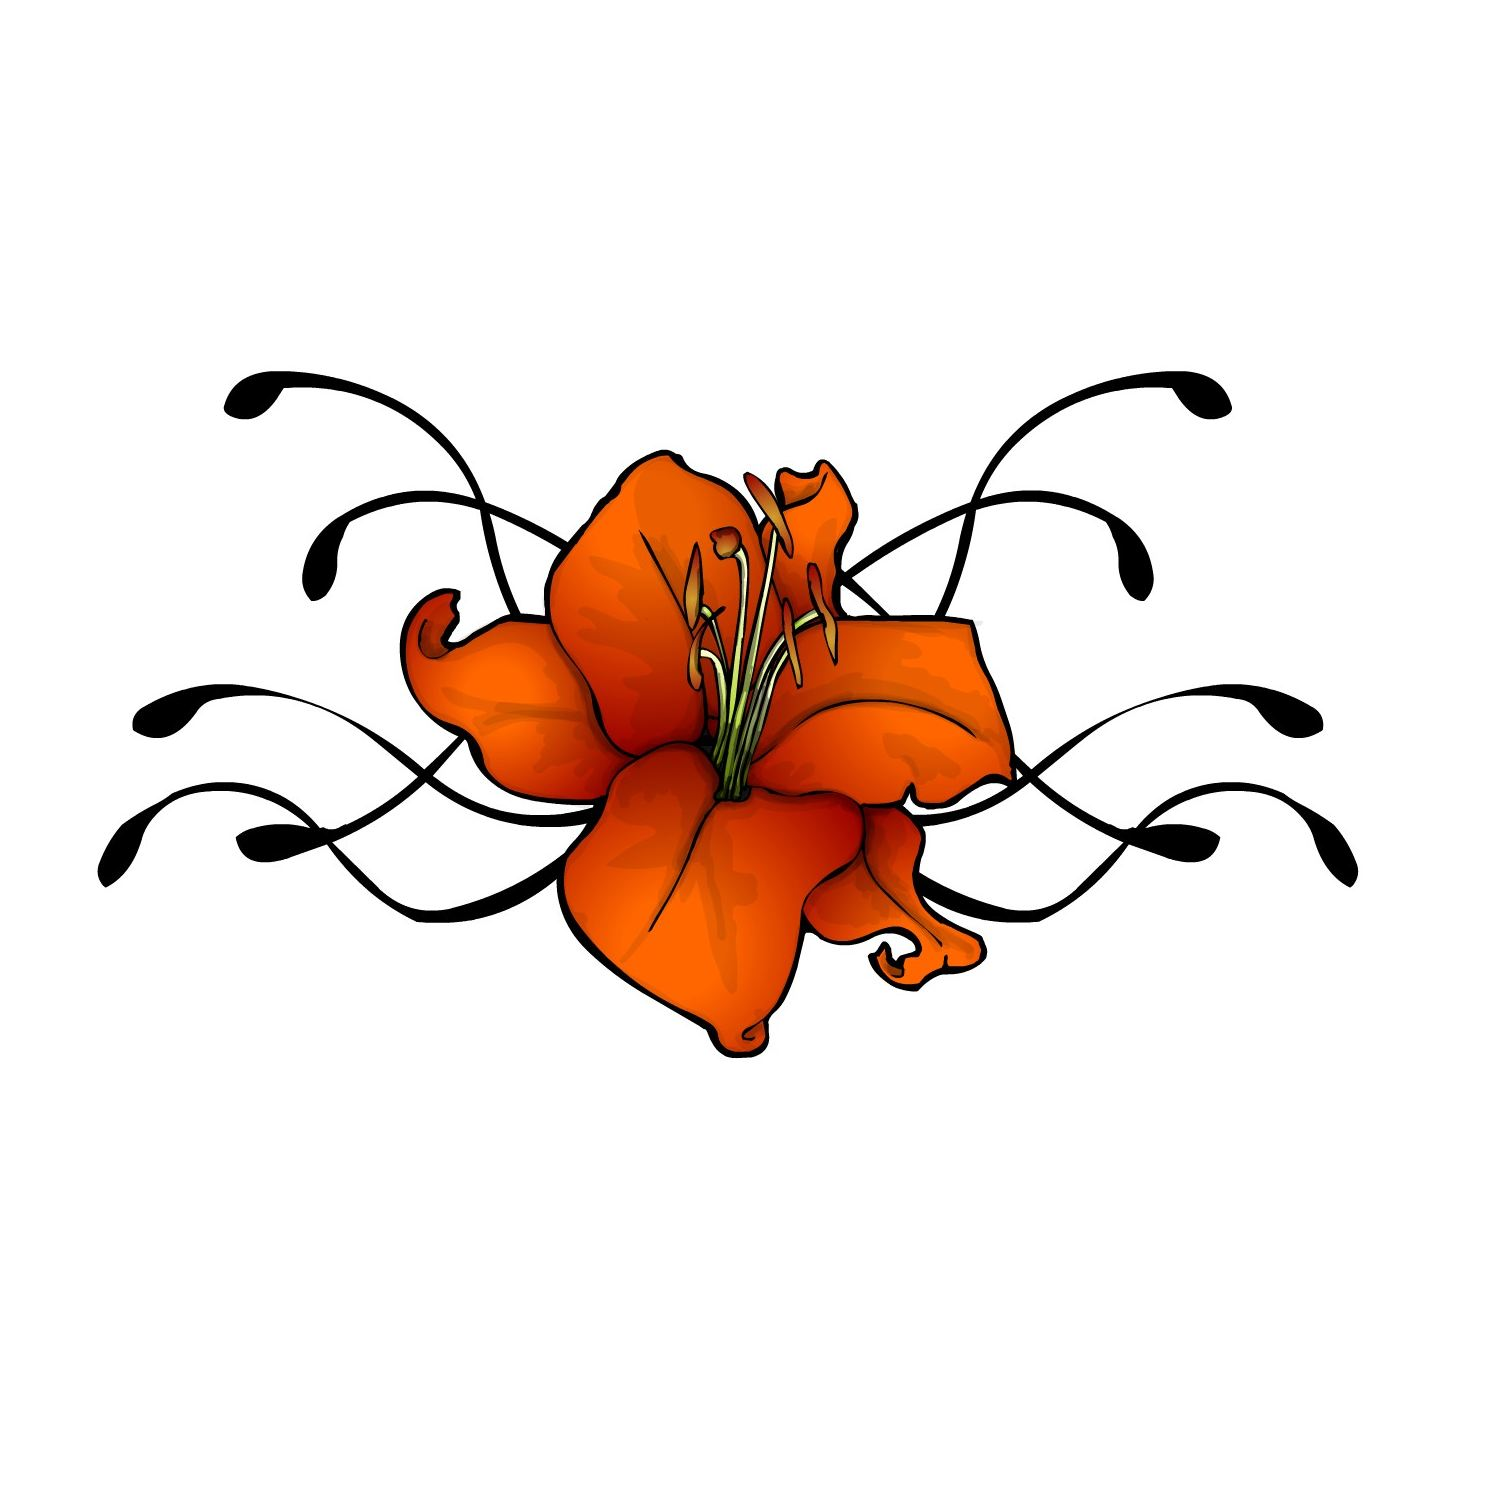 1500x1500 Tattoo Flower Designs Lily Flowers Tribal Orange Red And Yellow White